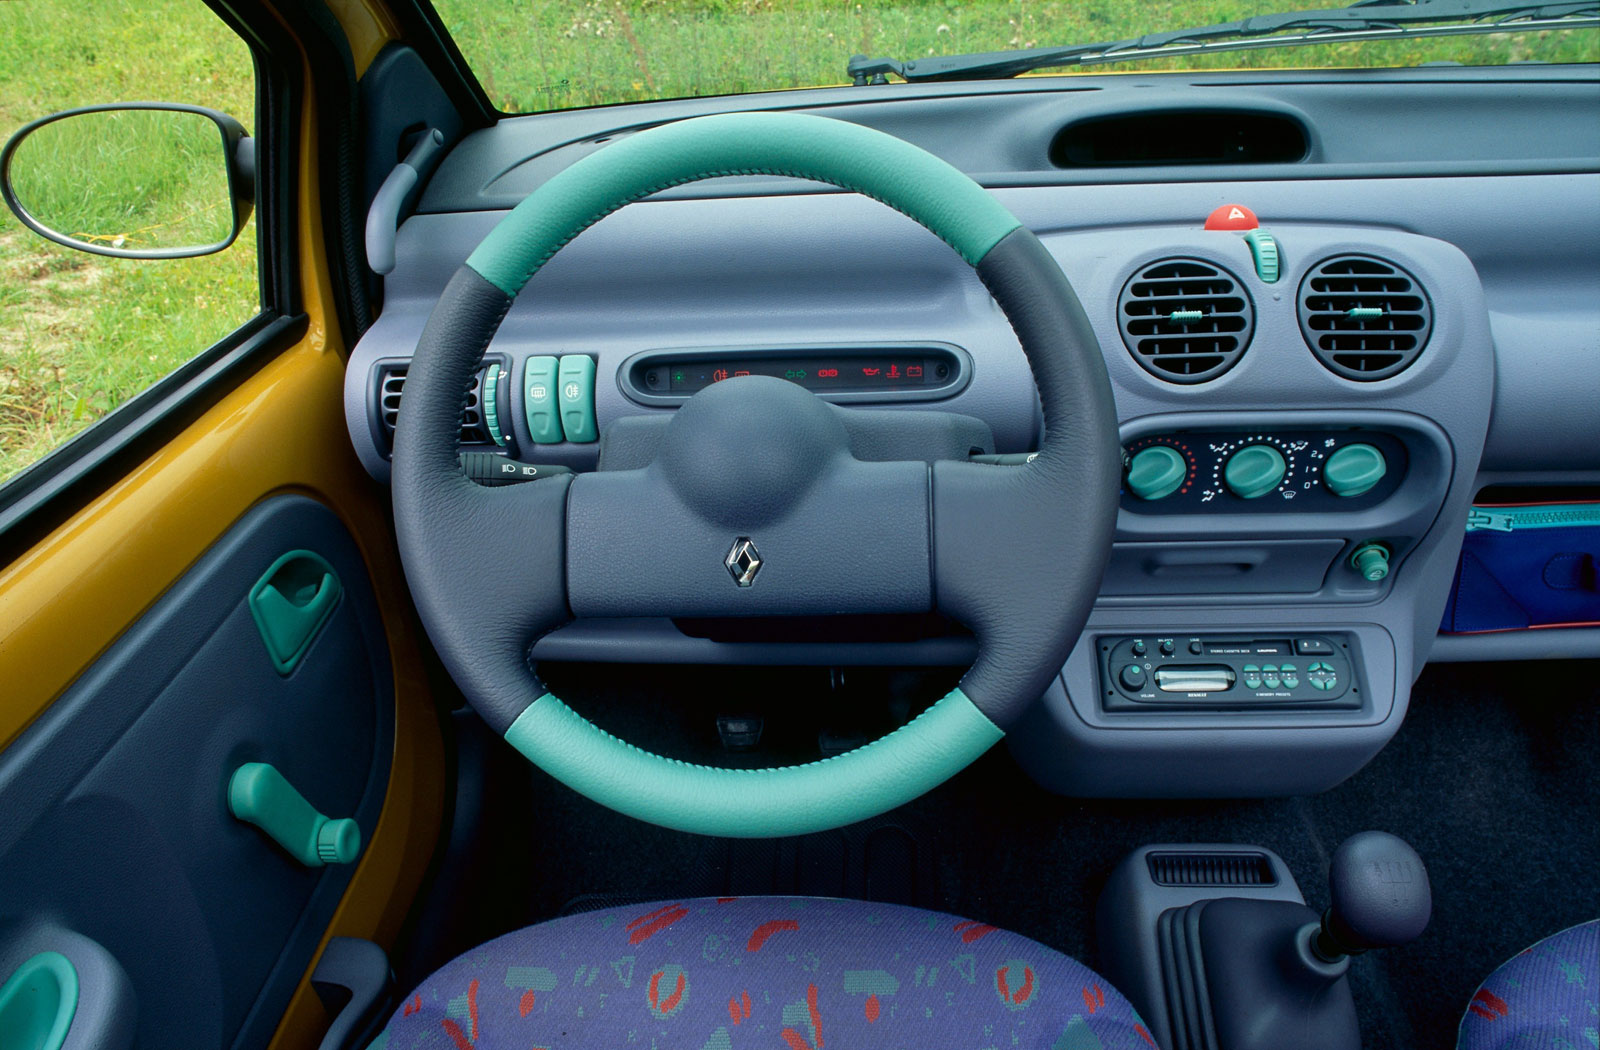 Renault Twingo 1 Interior - Car Body Design